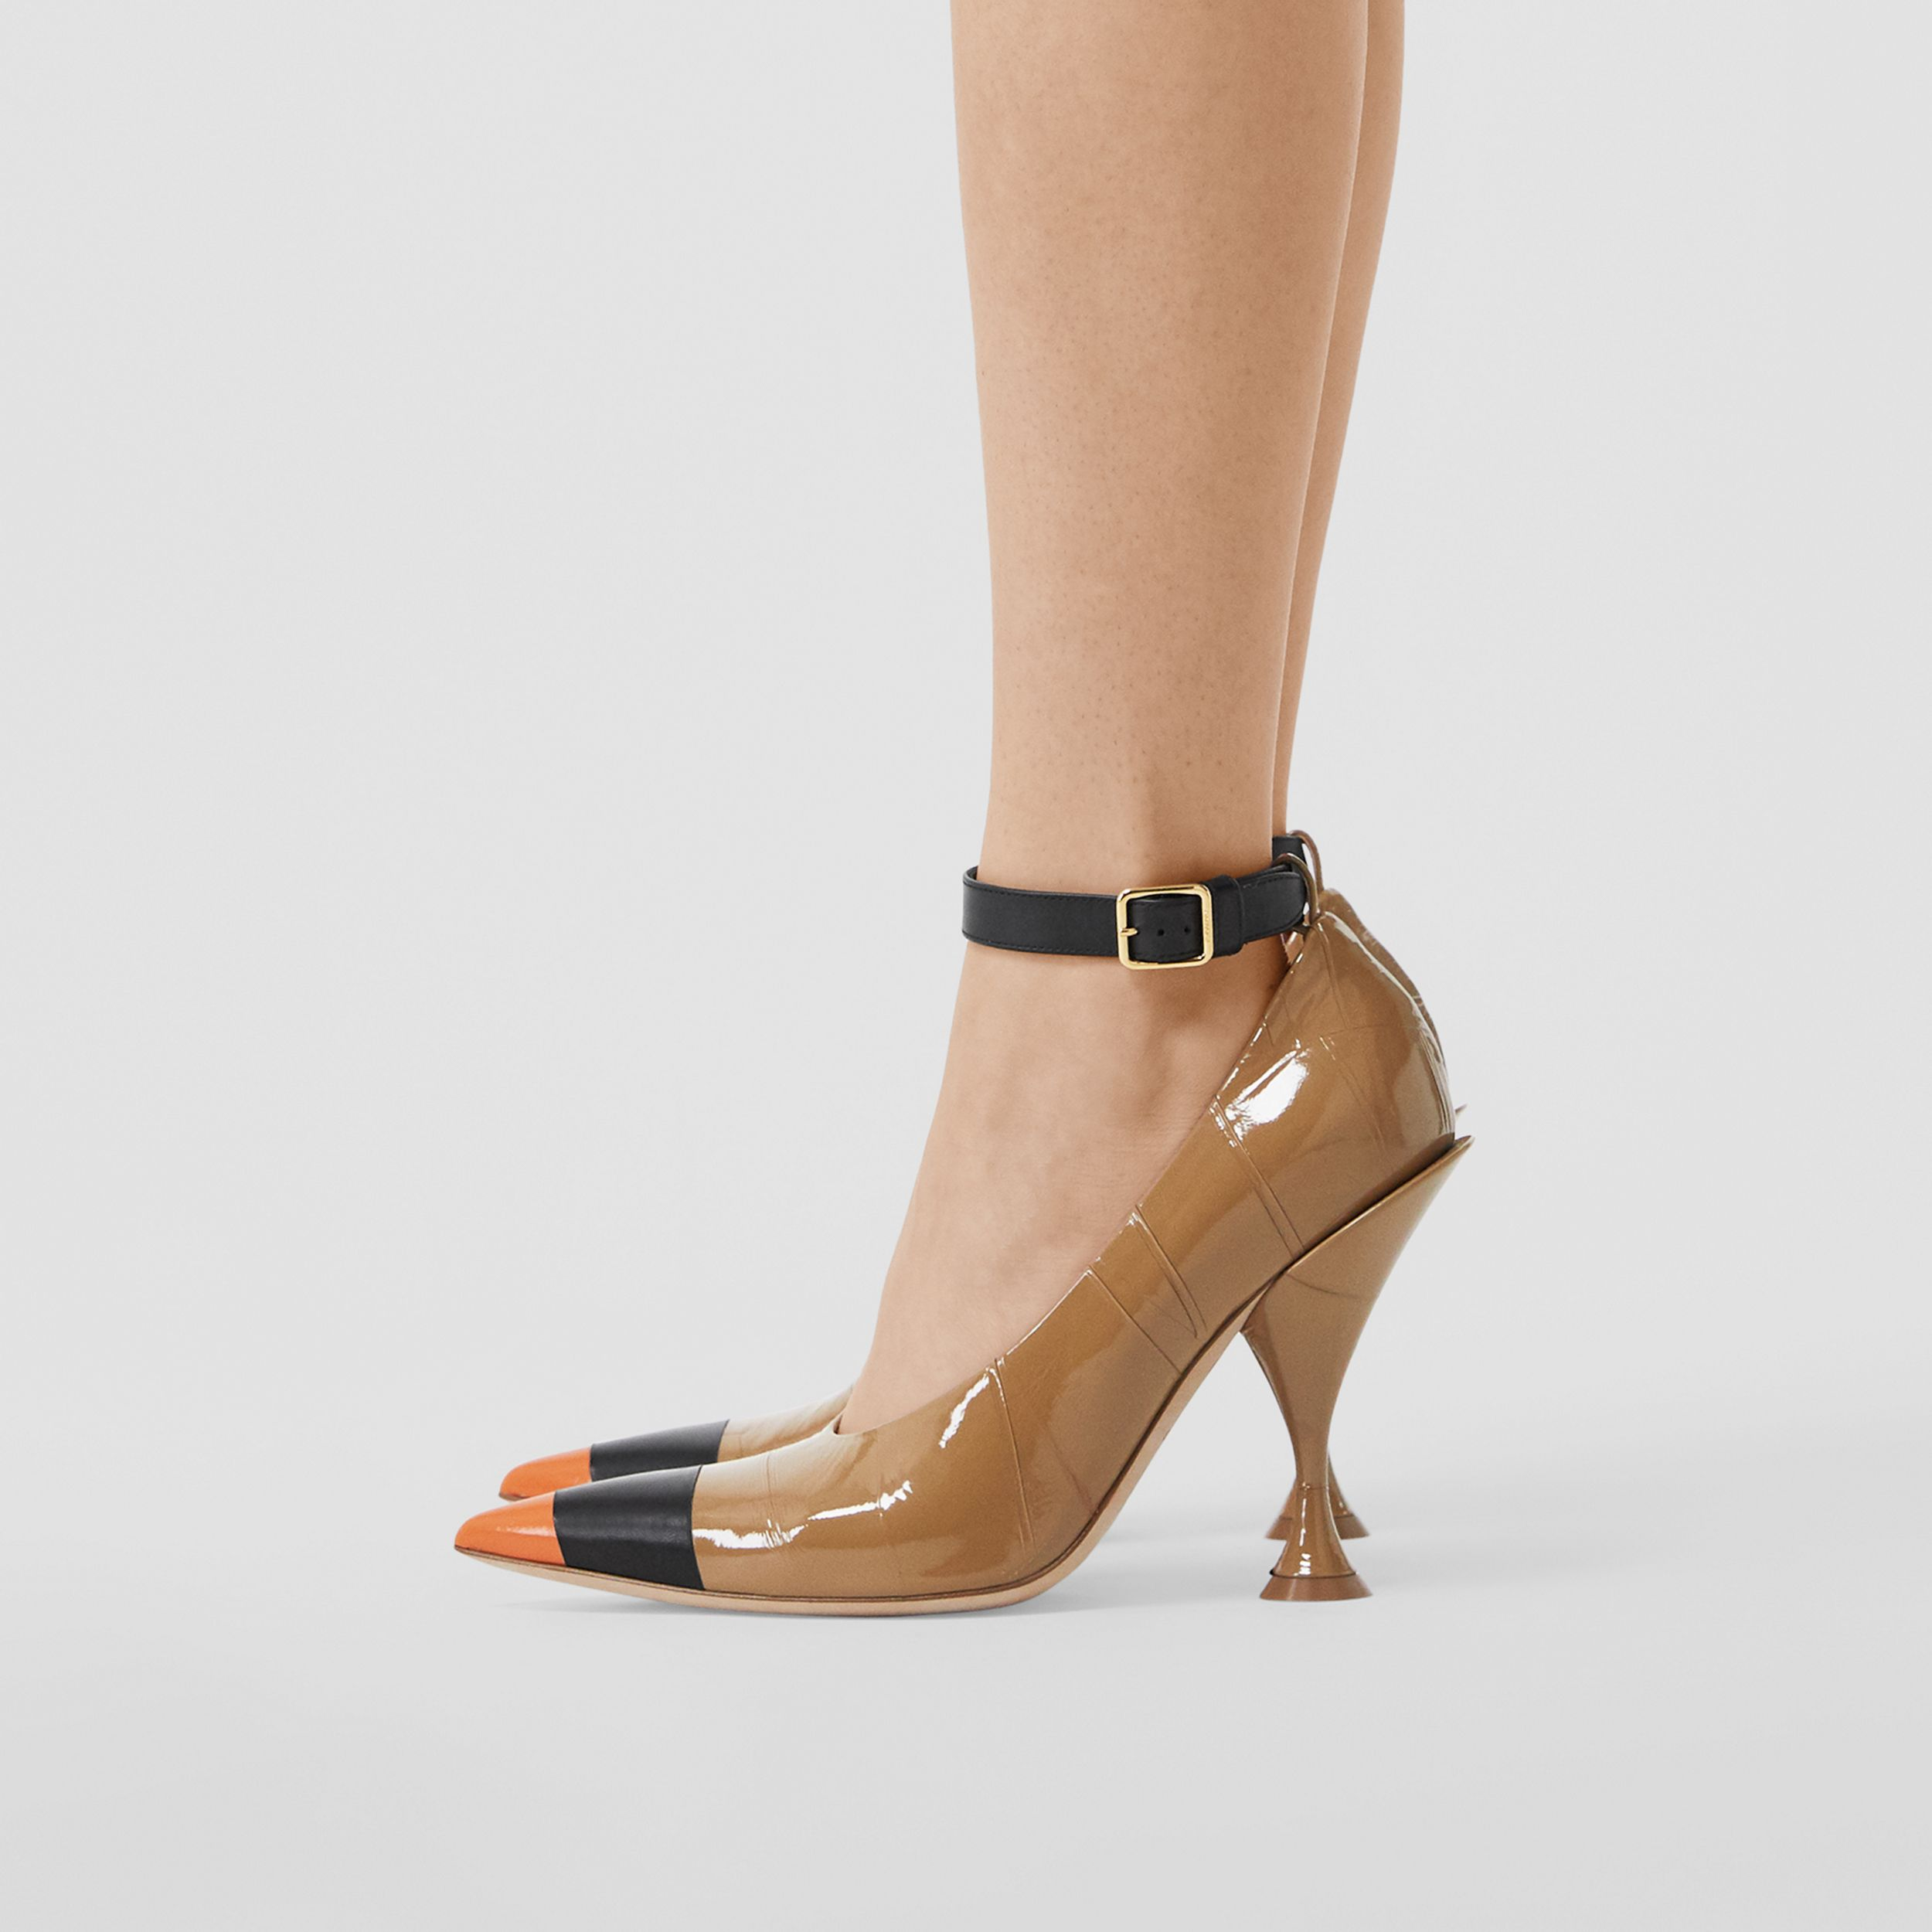 Tape Detail Leather Point-toe Pumps in Brown / Black - Women | Burberry United Kingdom - 3